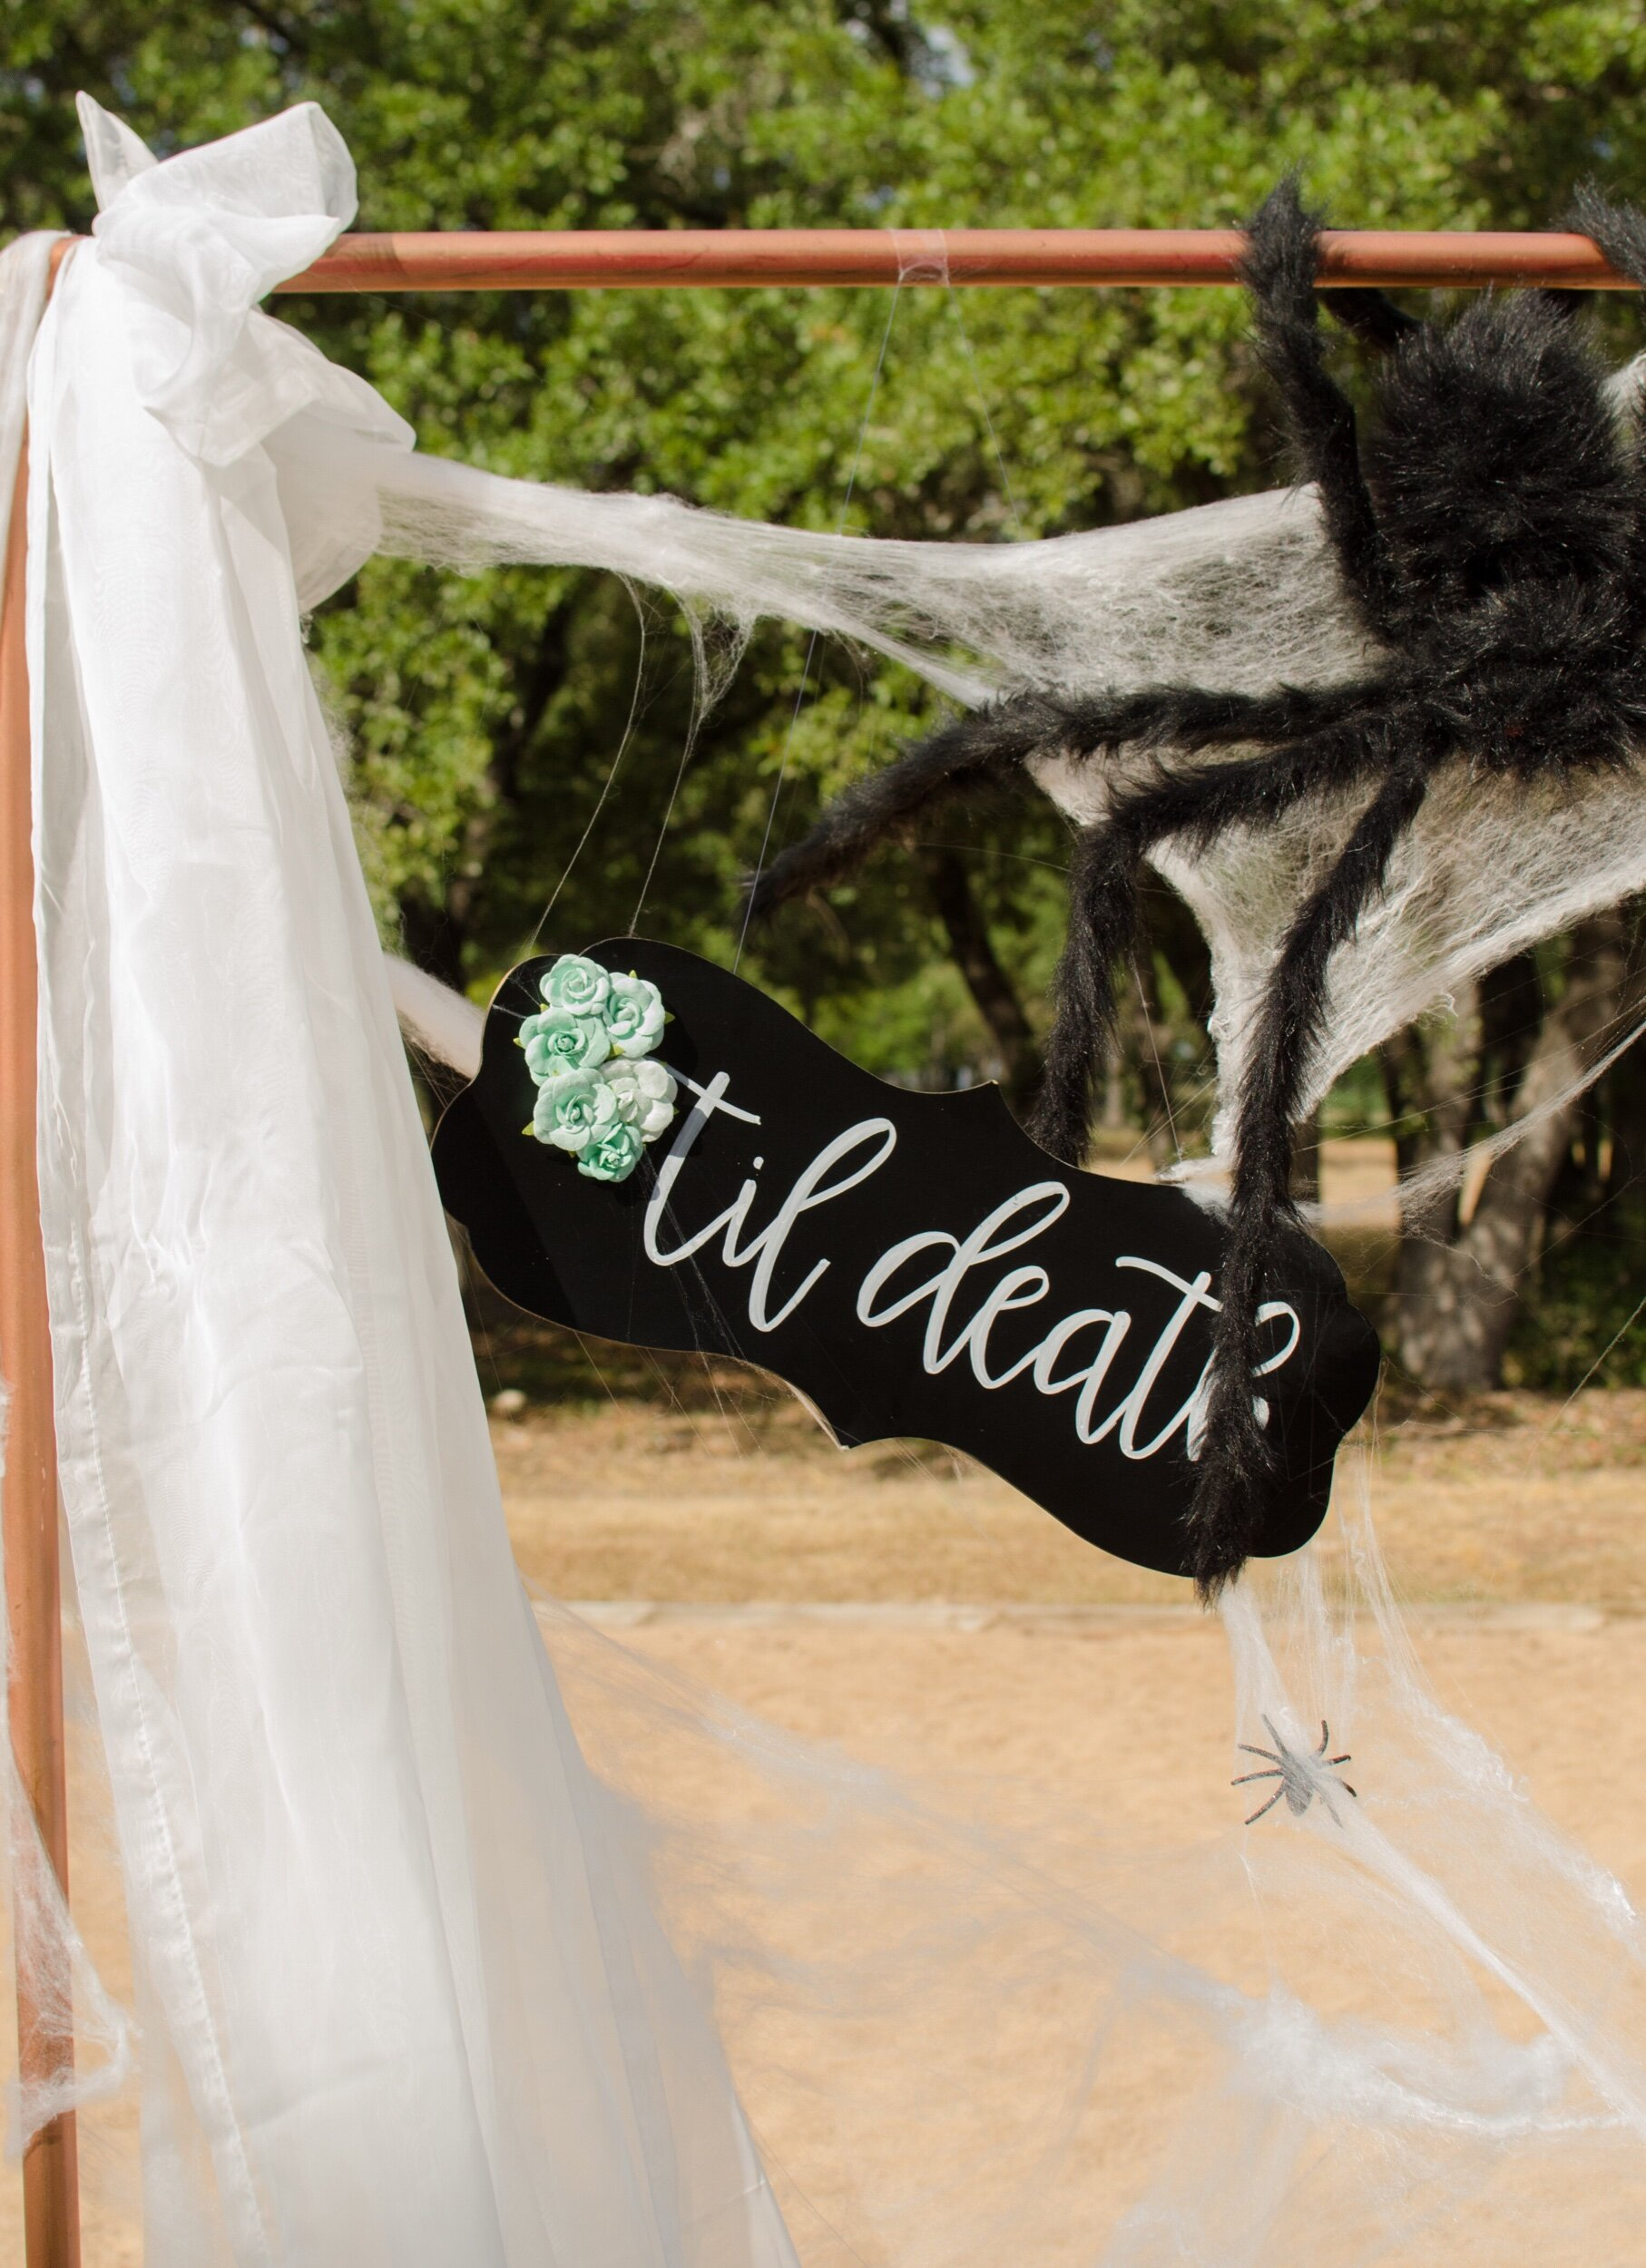 Gothic wedding sign ideas from Mint Event Design